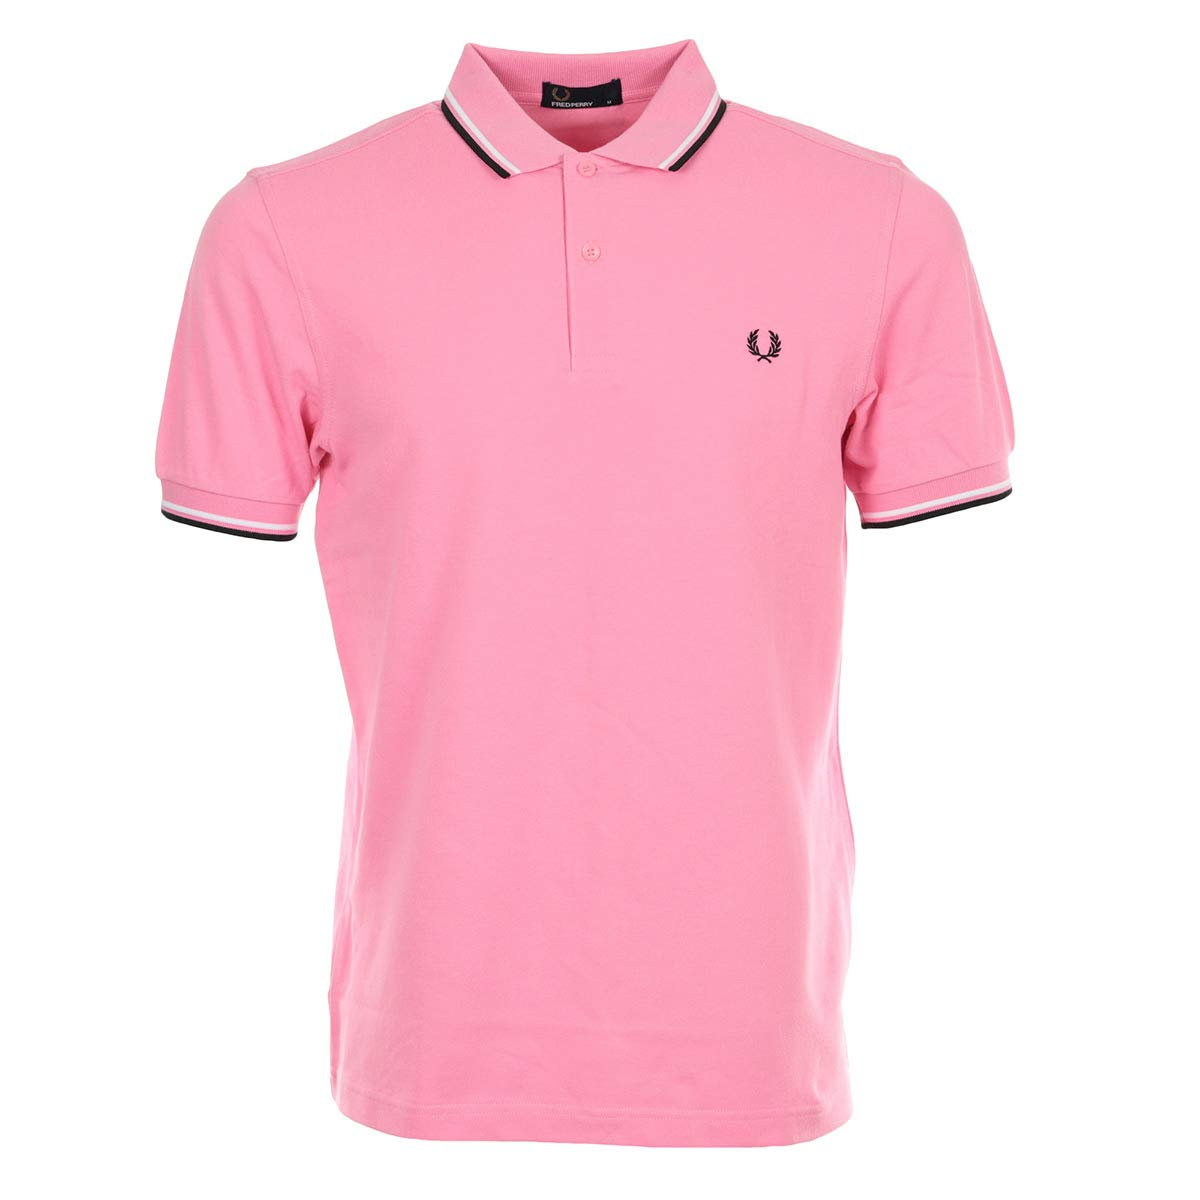 XL Frouge Perry Twin Tipped Shirt, Polo